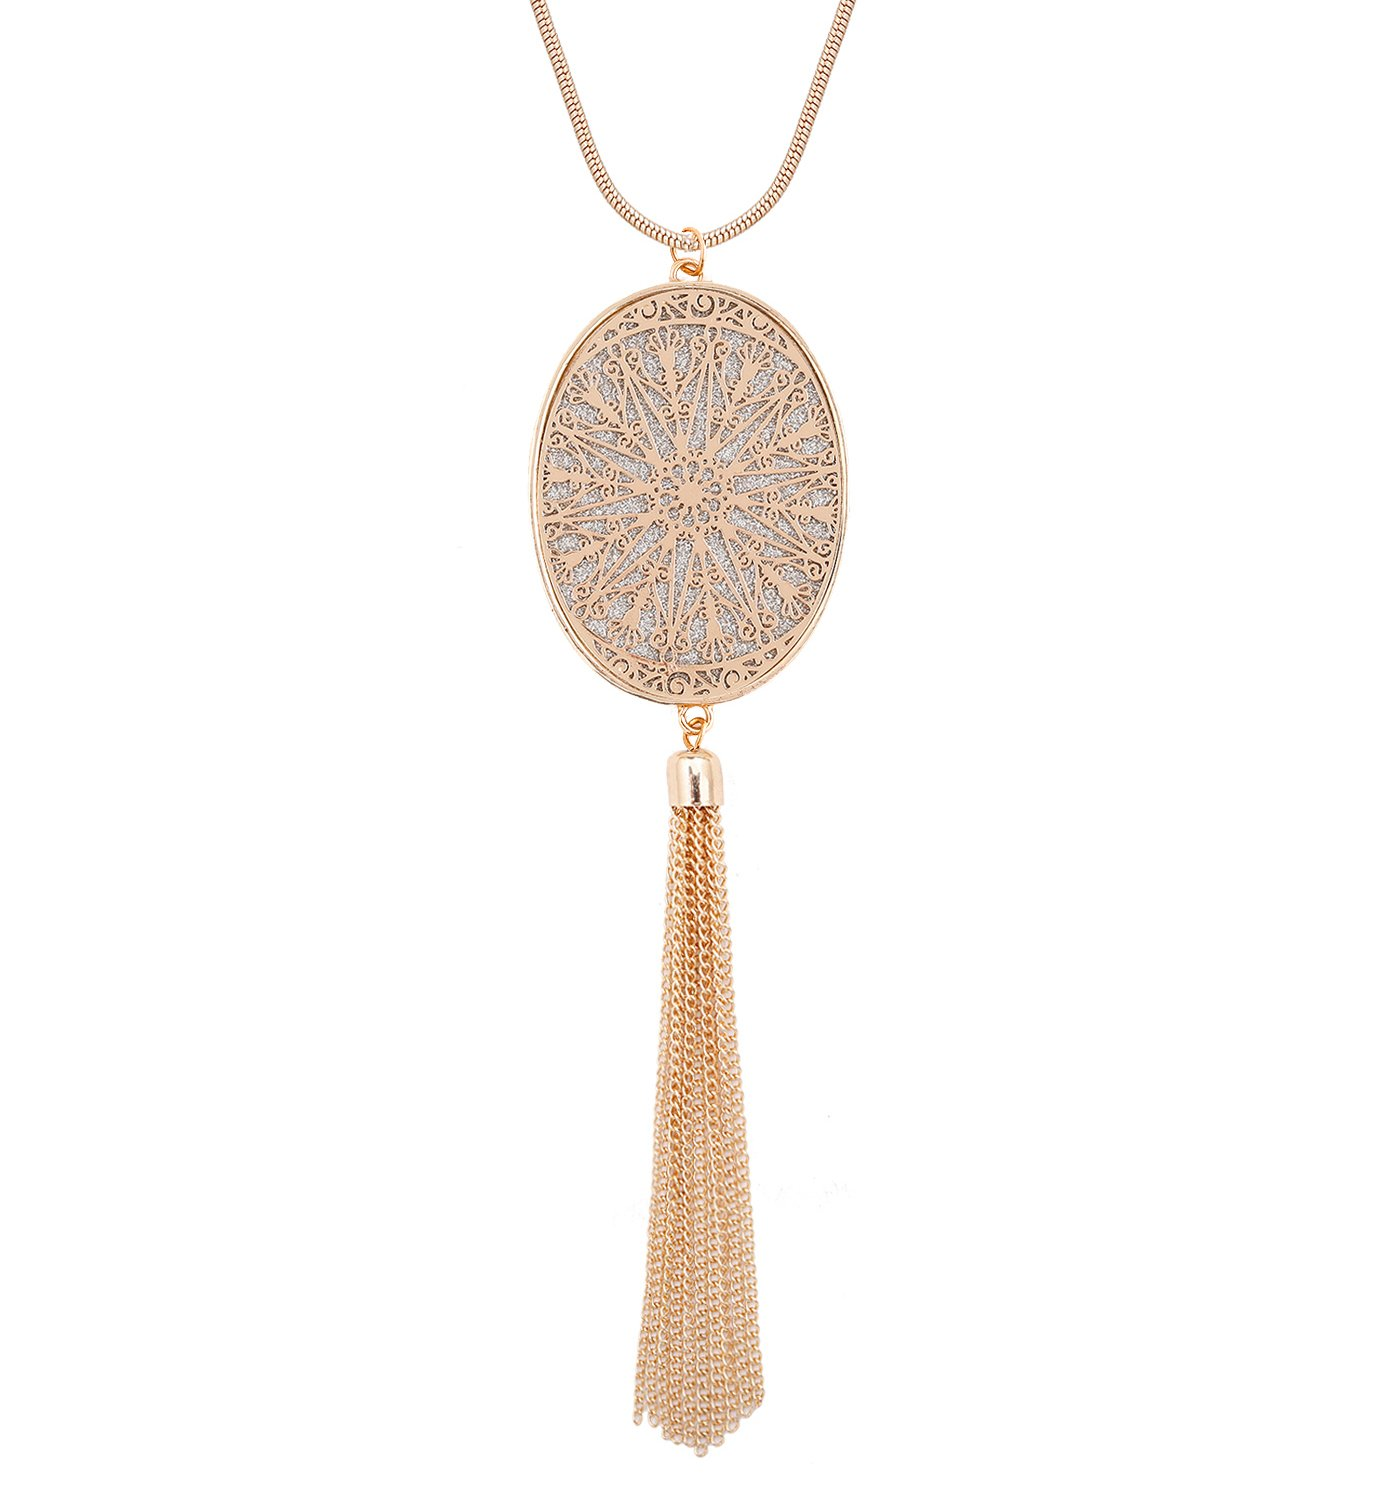 Long Necklaces for Women Disk Oval Pendant Necklace Bohemia Tassel Necklace Set Fashion Y Necklaces Statement Jewelry (Oval-Gold)